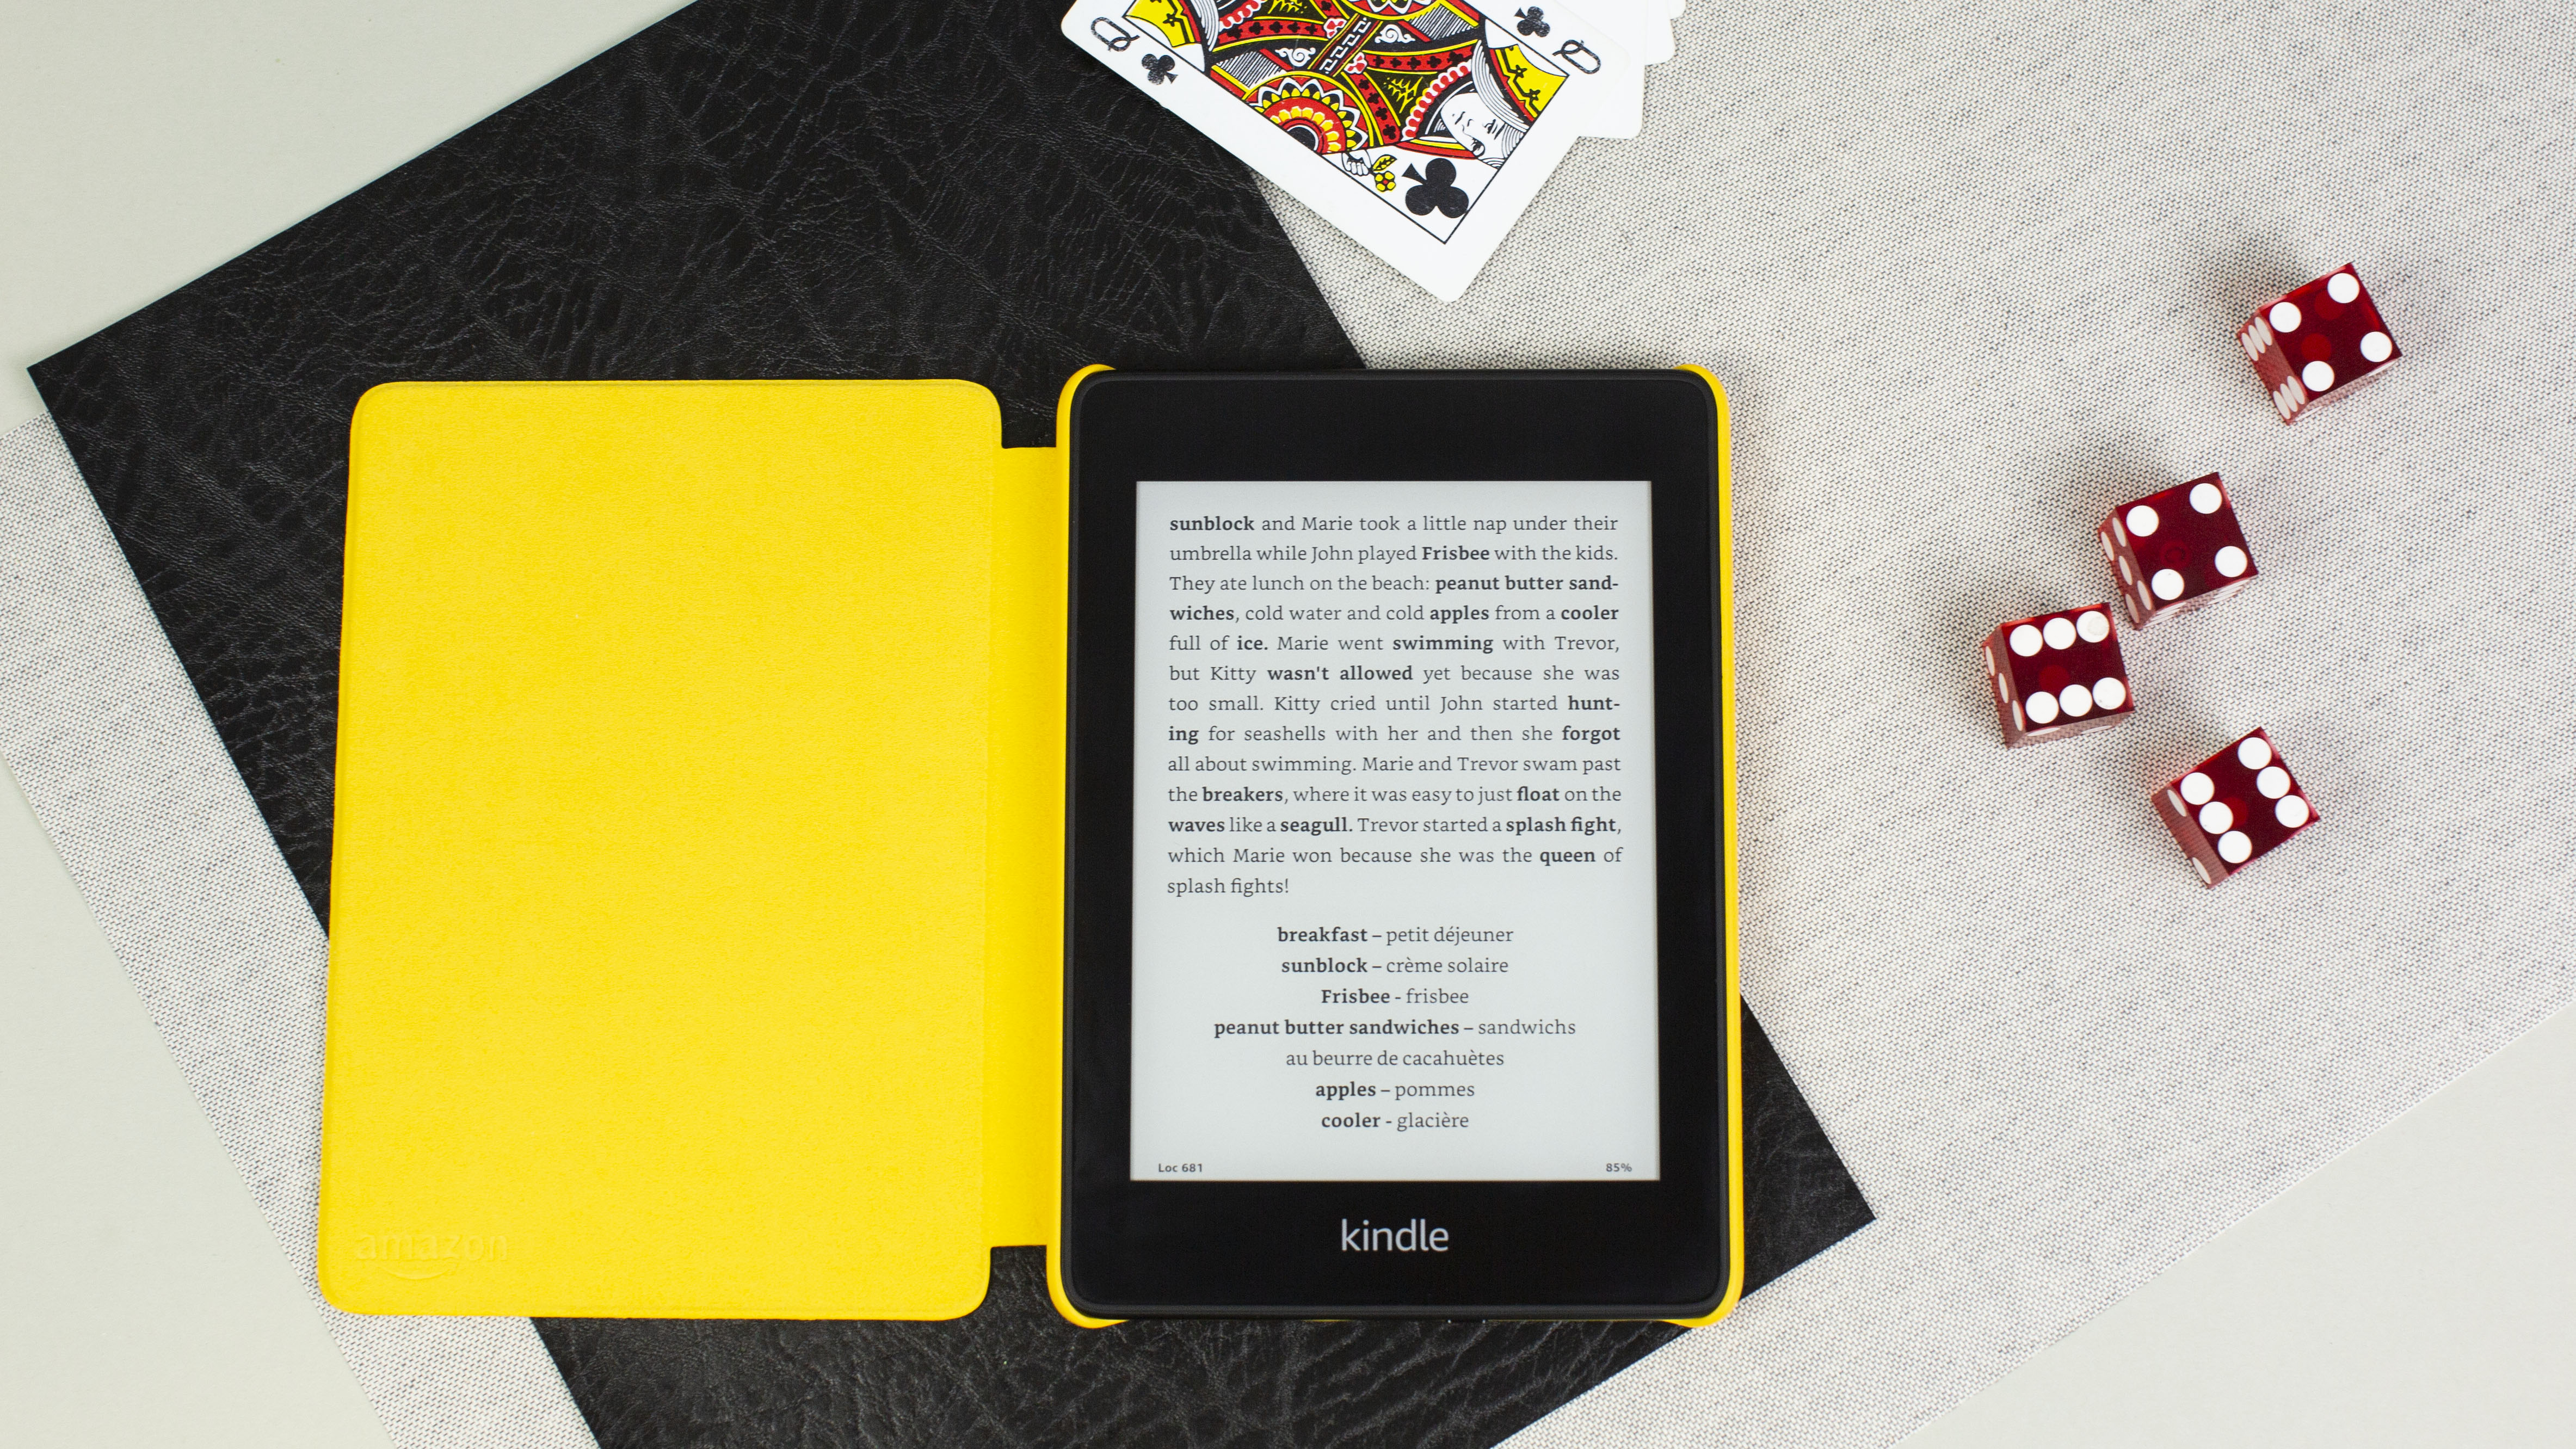 Kindle Paperwhite 2018: is it the best e-reader out there? | AndroidPIT